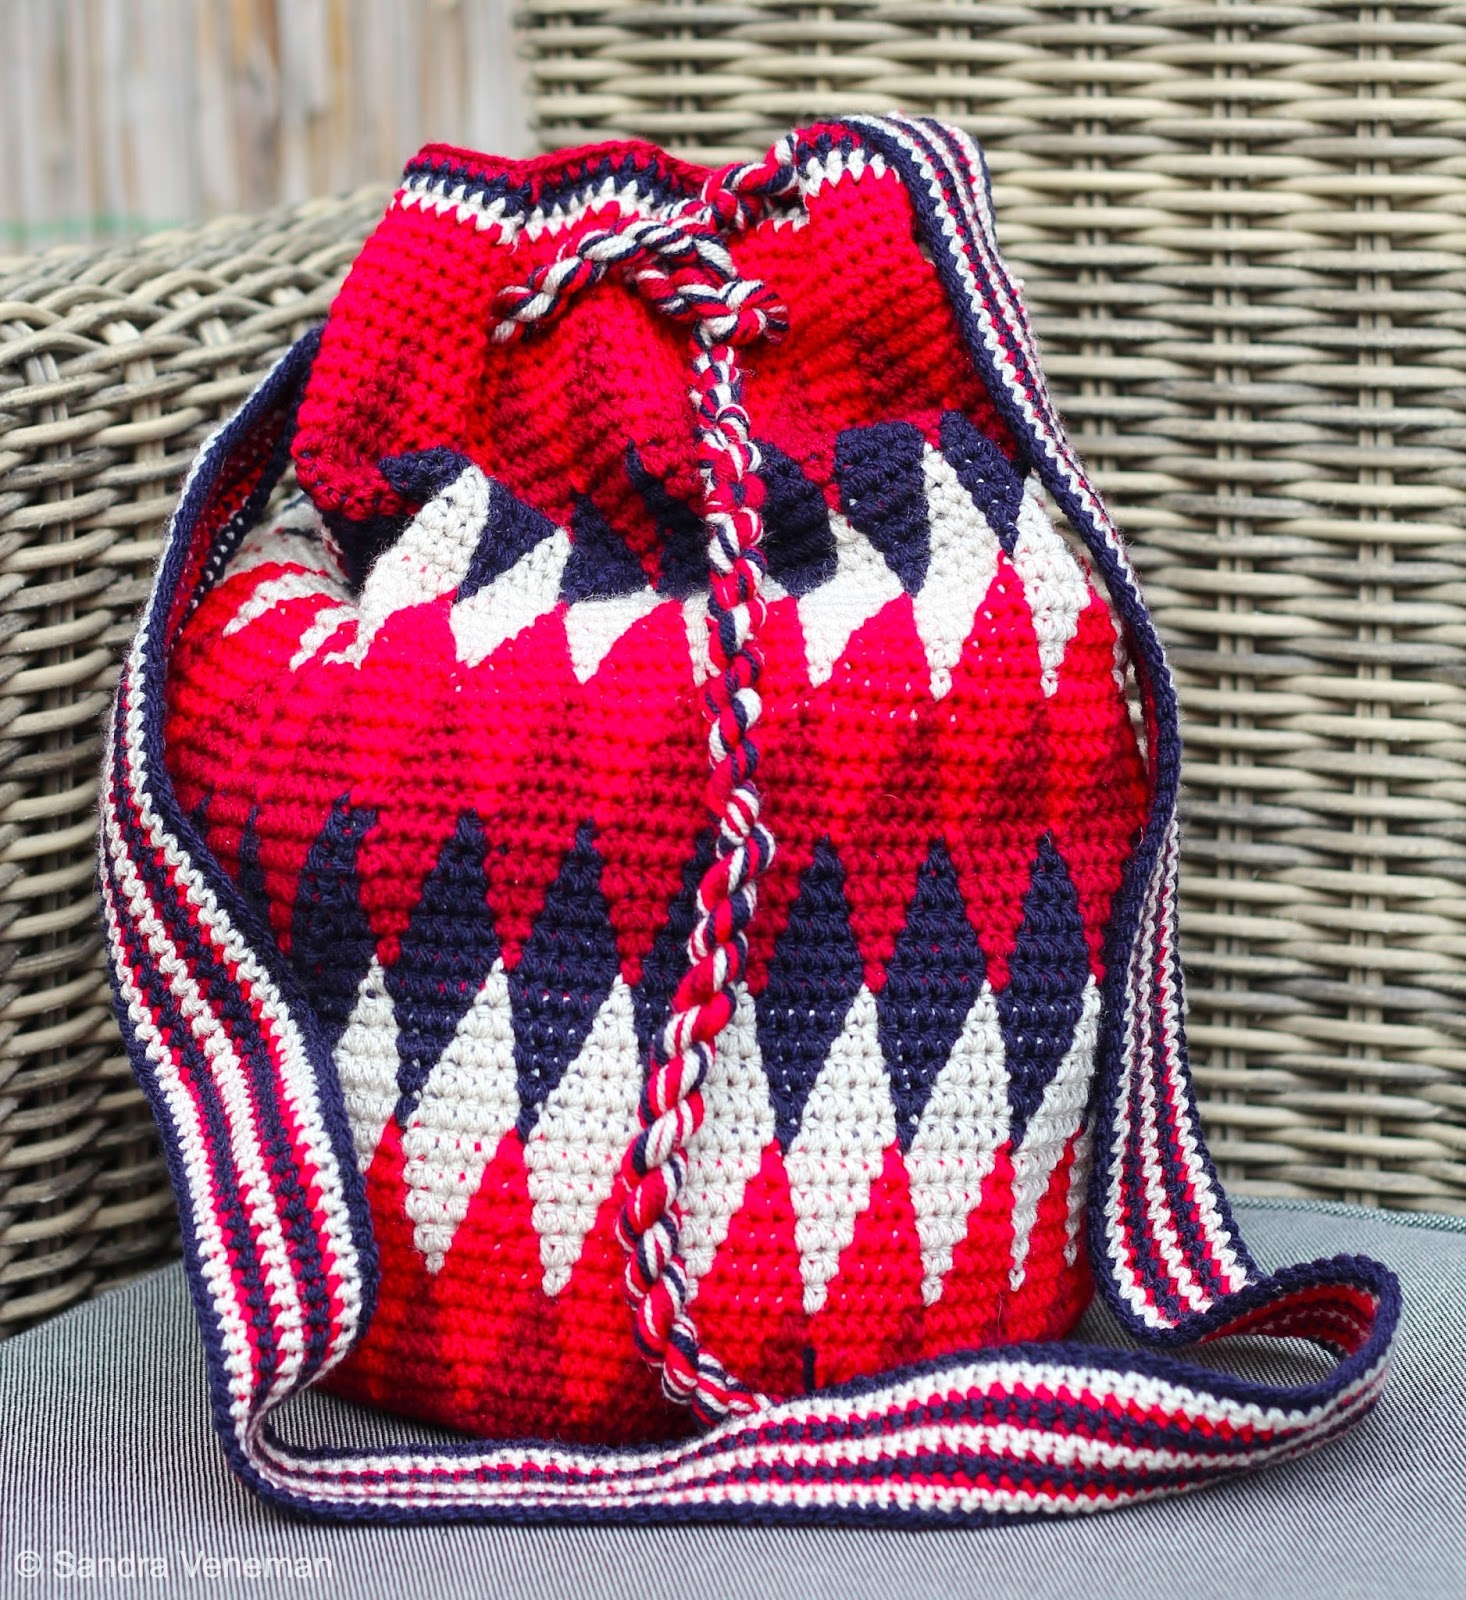 Beautiful Boardwalk Tapestry Crochet Tas Met Een Knipoog Naar Tommy